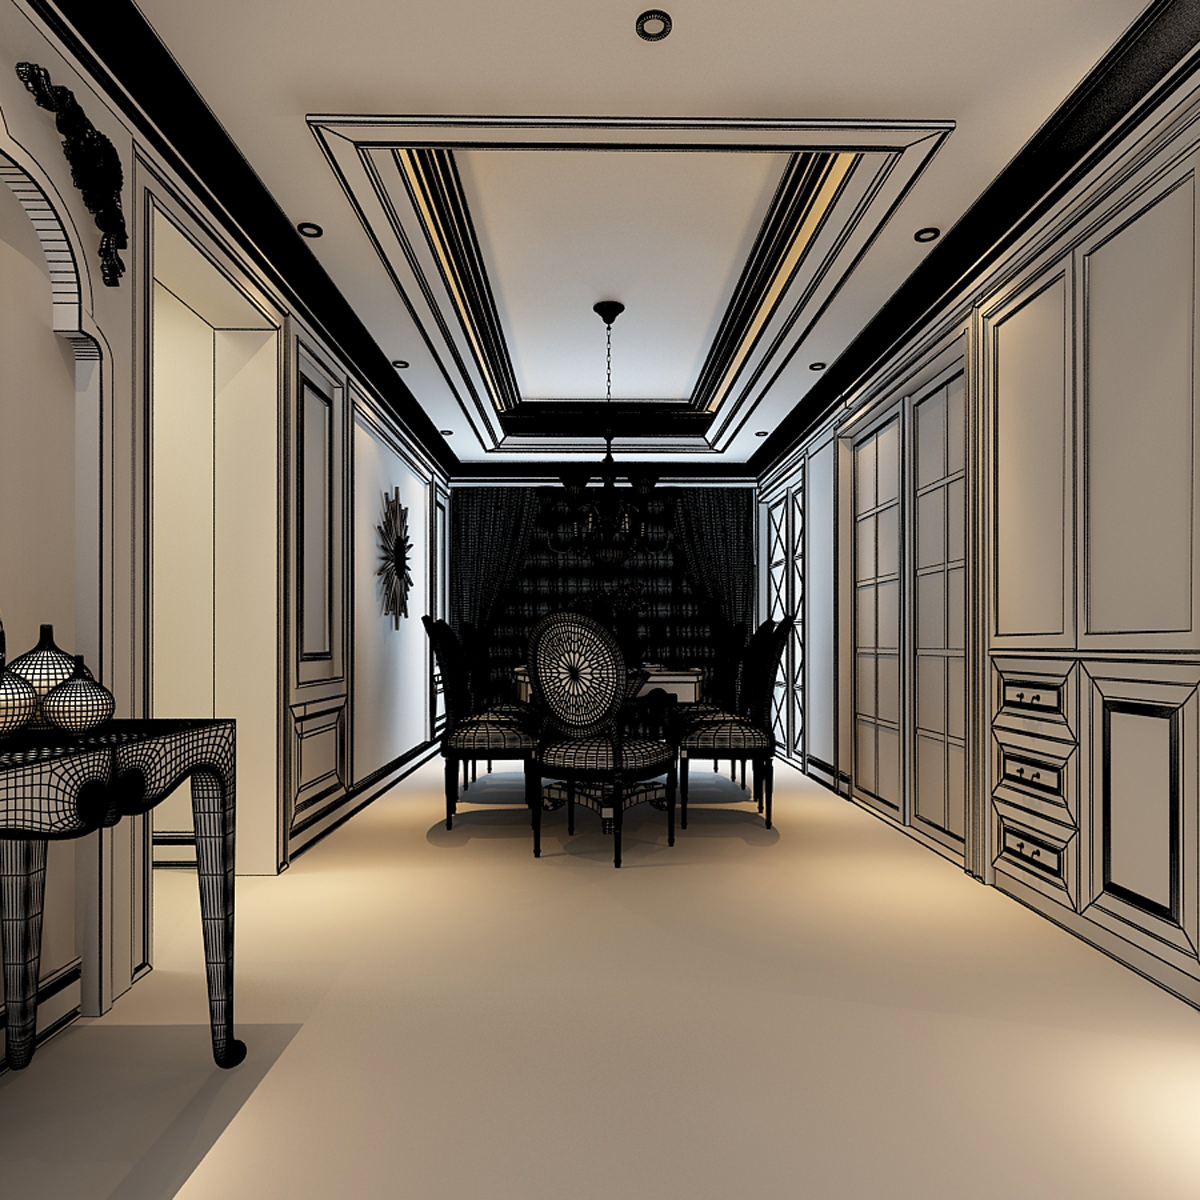 Luxurious american style house interior photoreal 3d model for 3d house interior